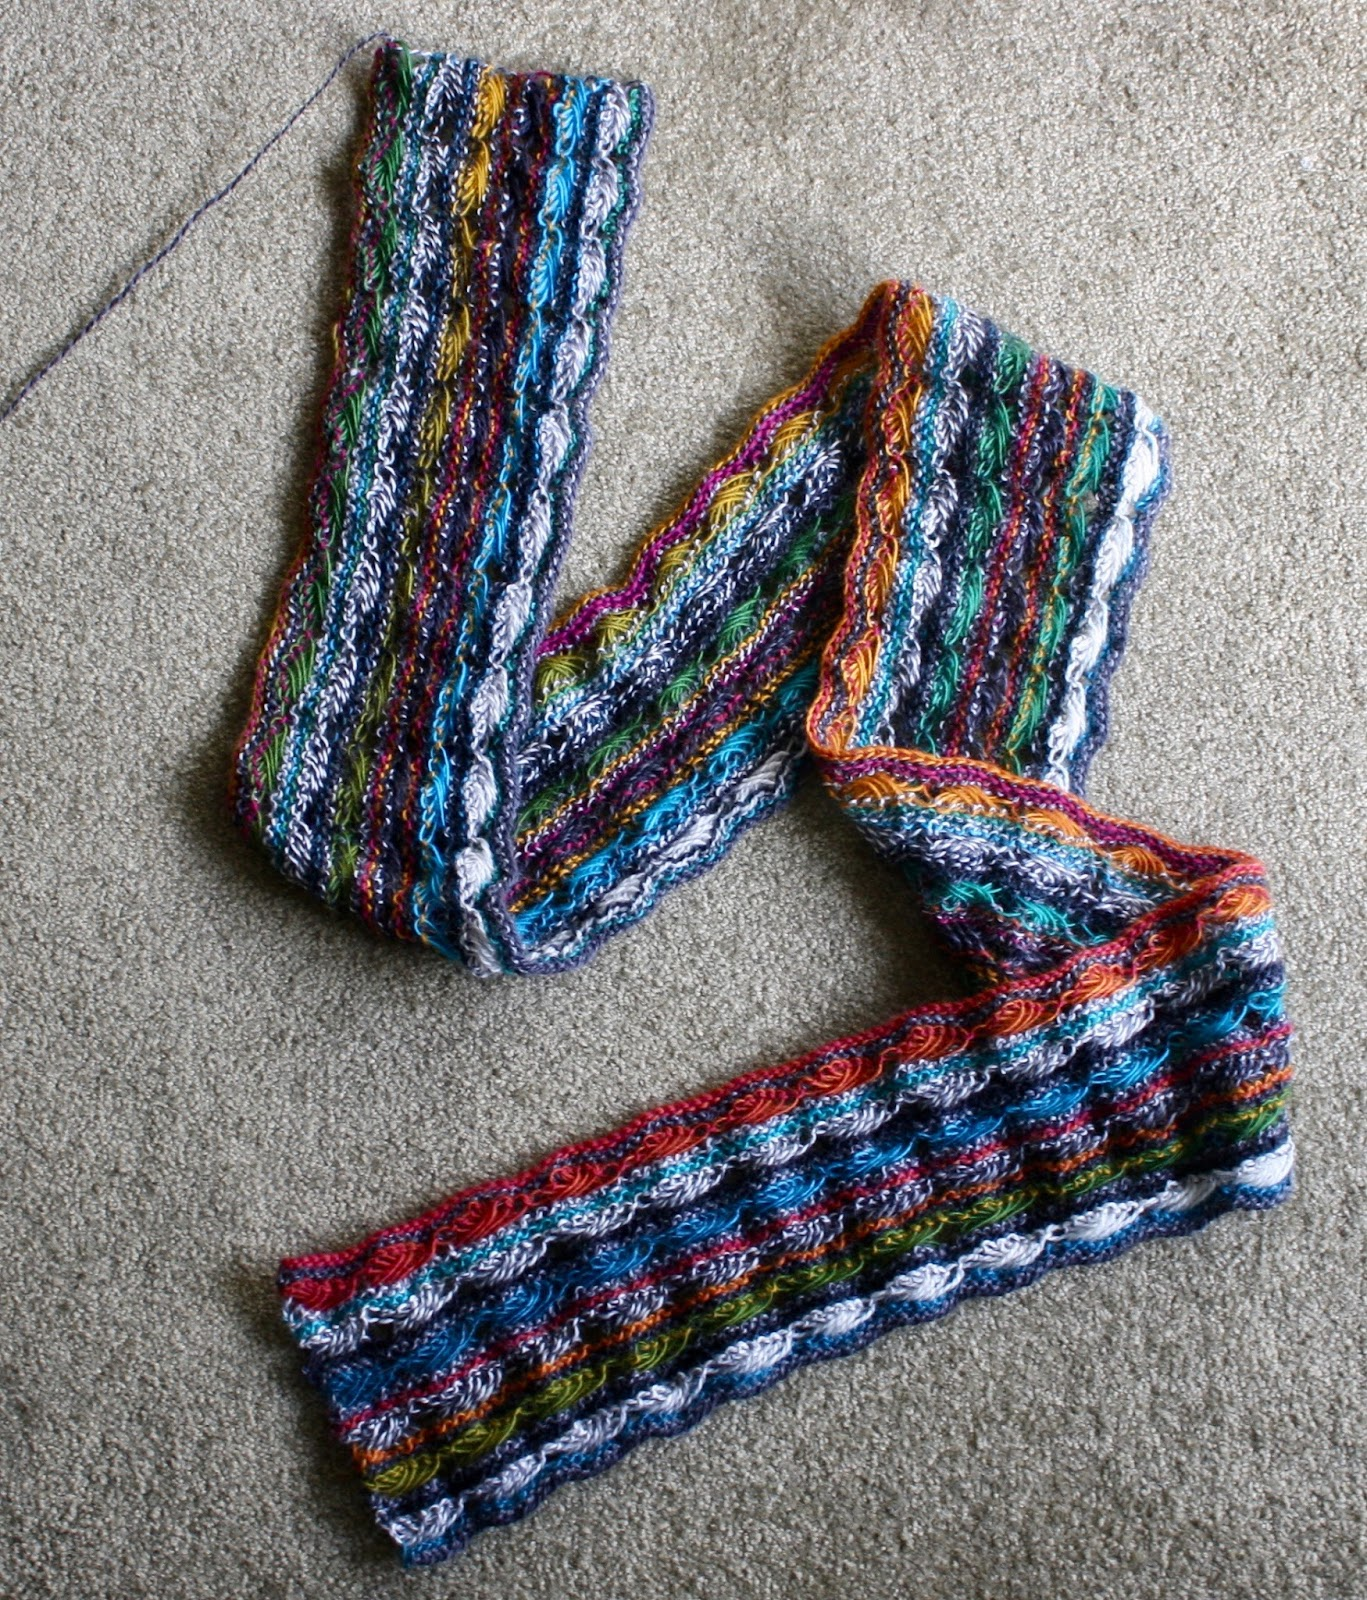 QueerJoes Knitting Blog: The Season is Upon Us